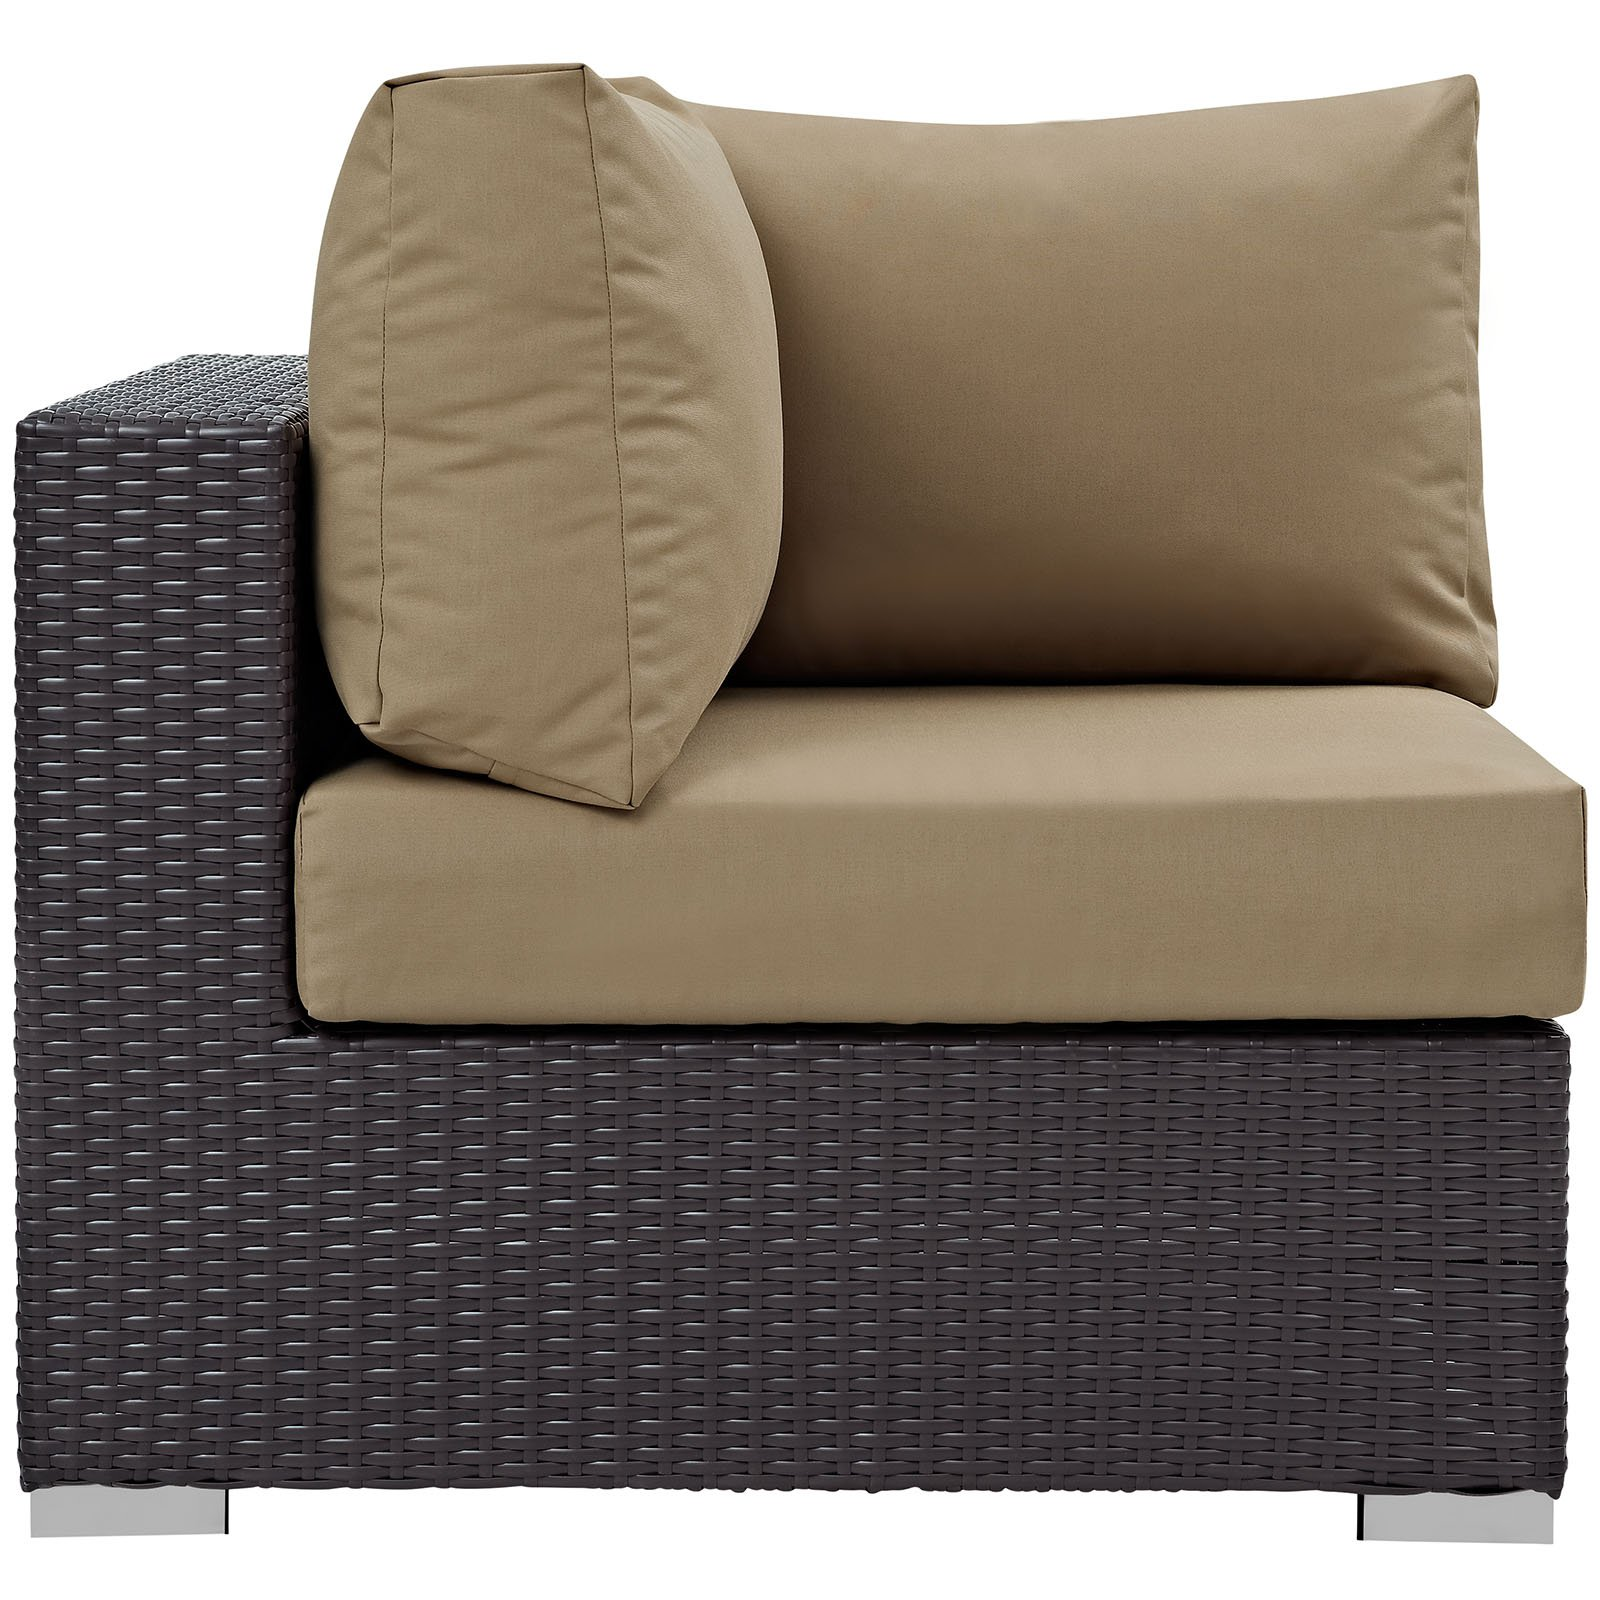 Modway Convene Outdoor Patio Corner, Multiple Colors